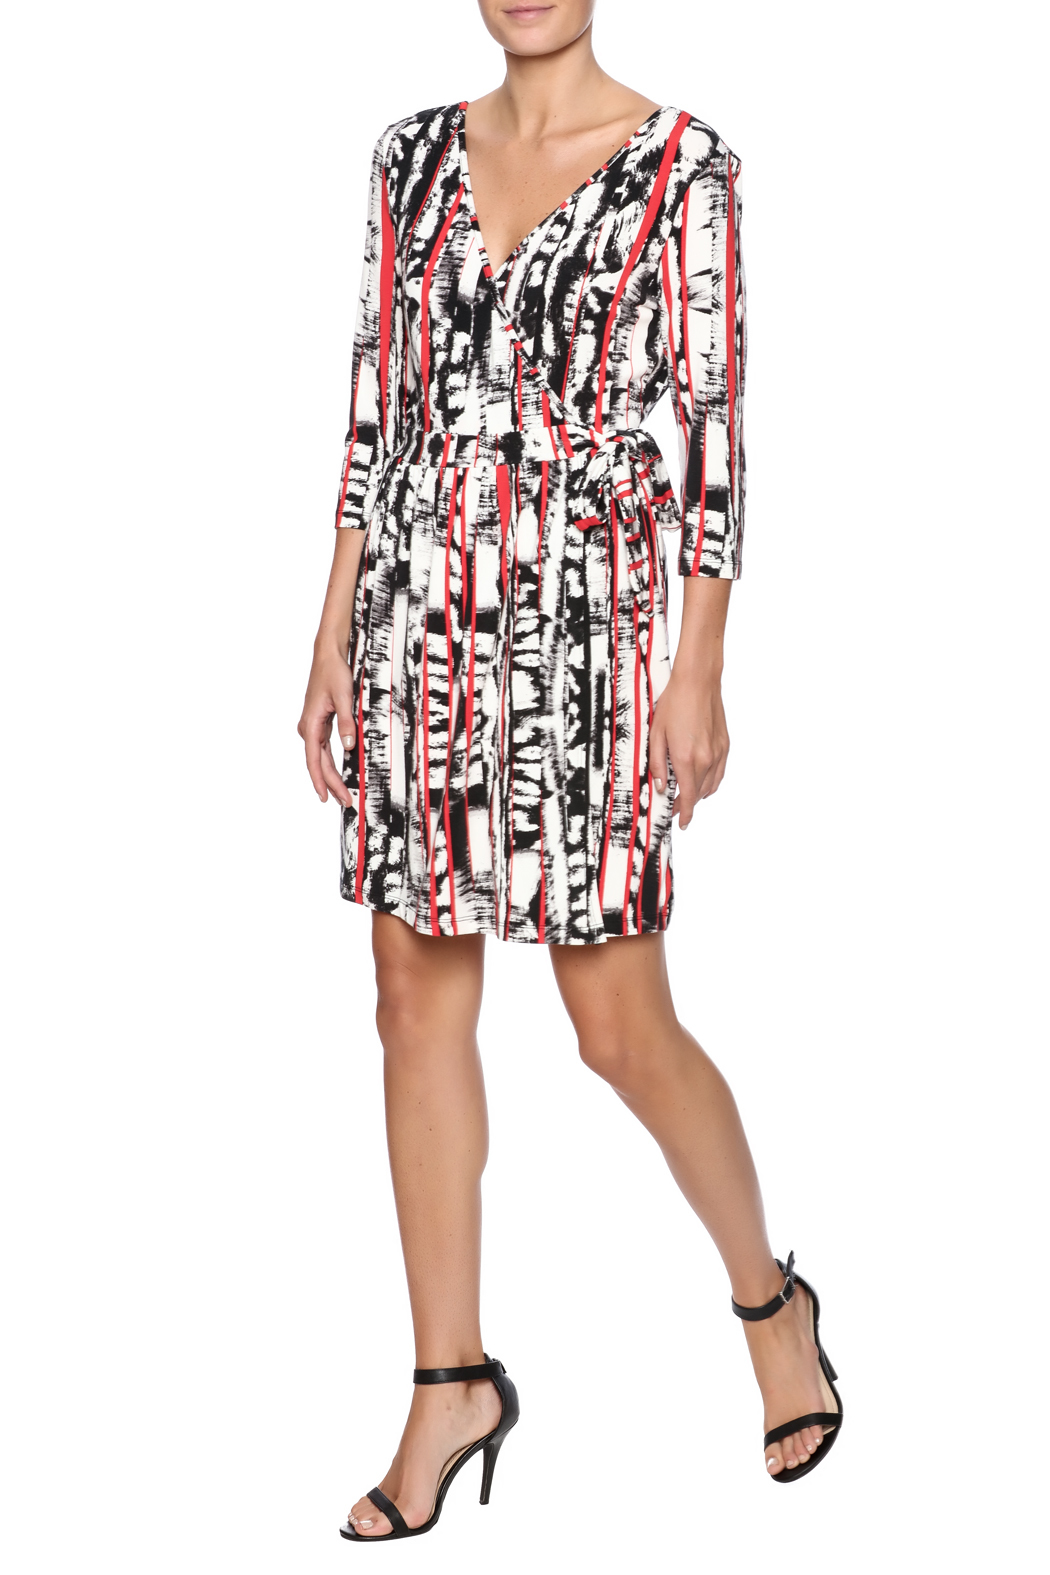 Tart Collections Printed Wrap Dress - Front Full Image